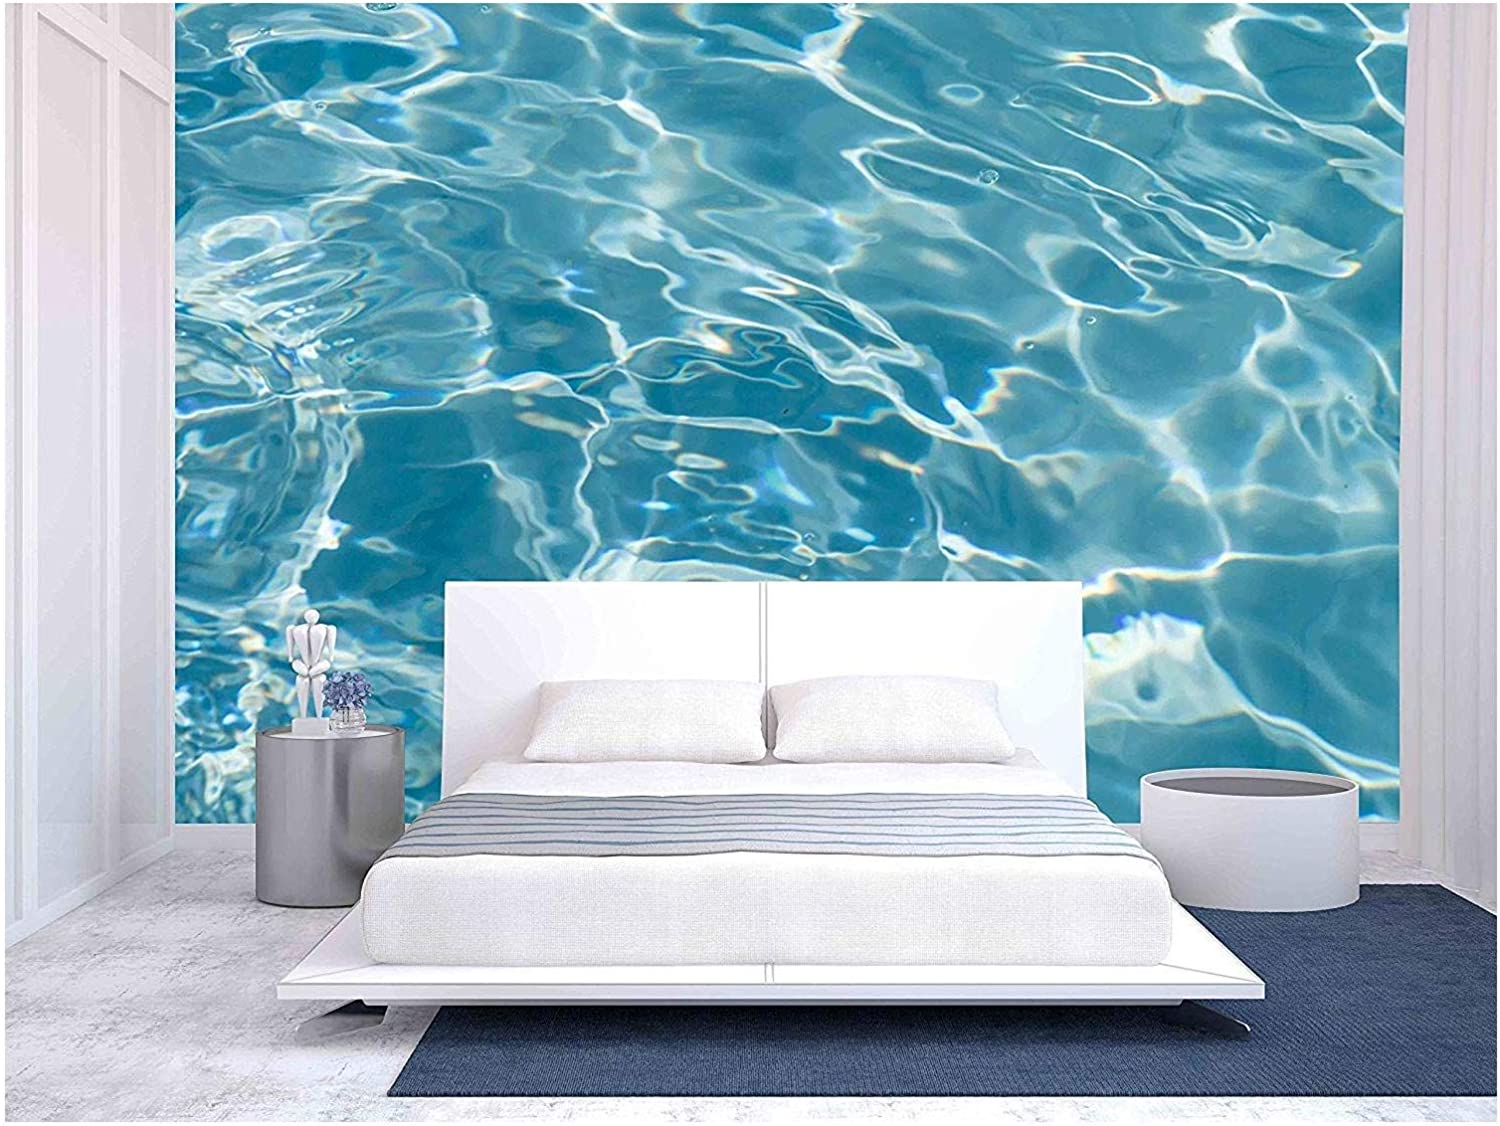 wall26 - Beautiful Pattern of Blue Water Reflecting The Sun. - Removable Wall Mural   Self-Adhesive Large Wallpaper - 100x144 inches